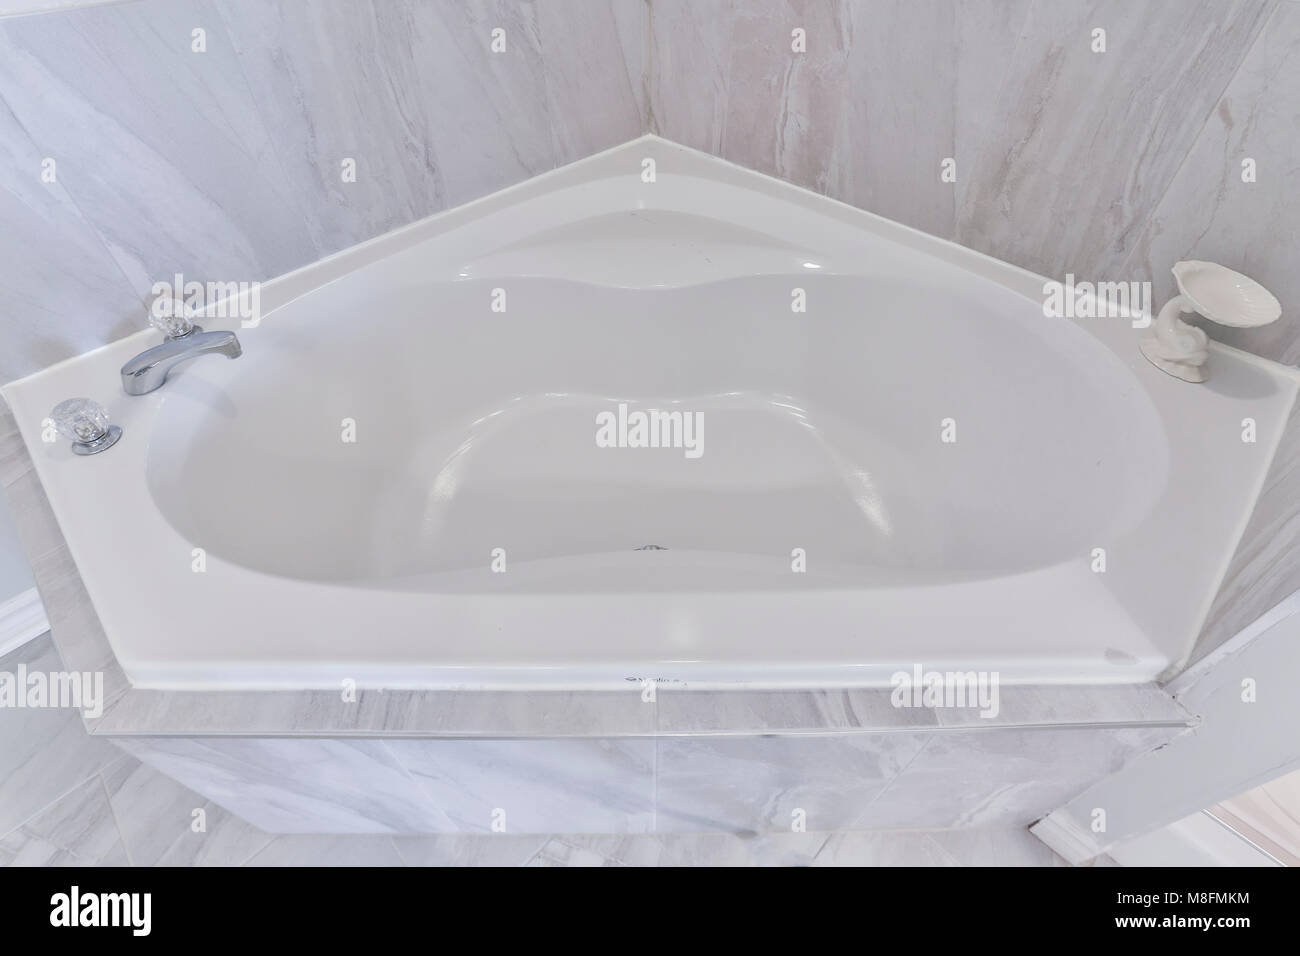 White small jacuzzi at old canadian house Stock Photo: 177366440 - Alamy